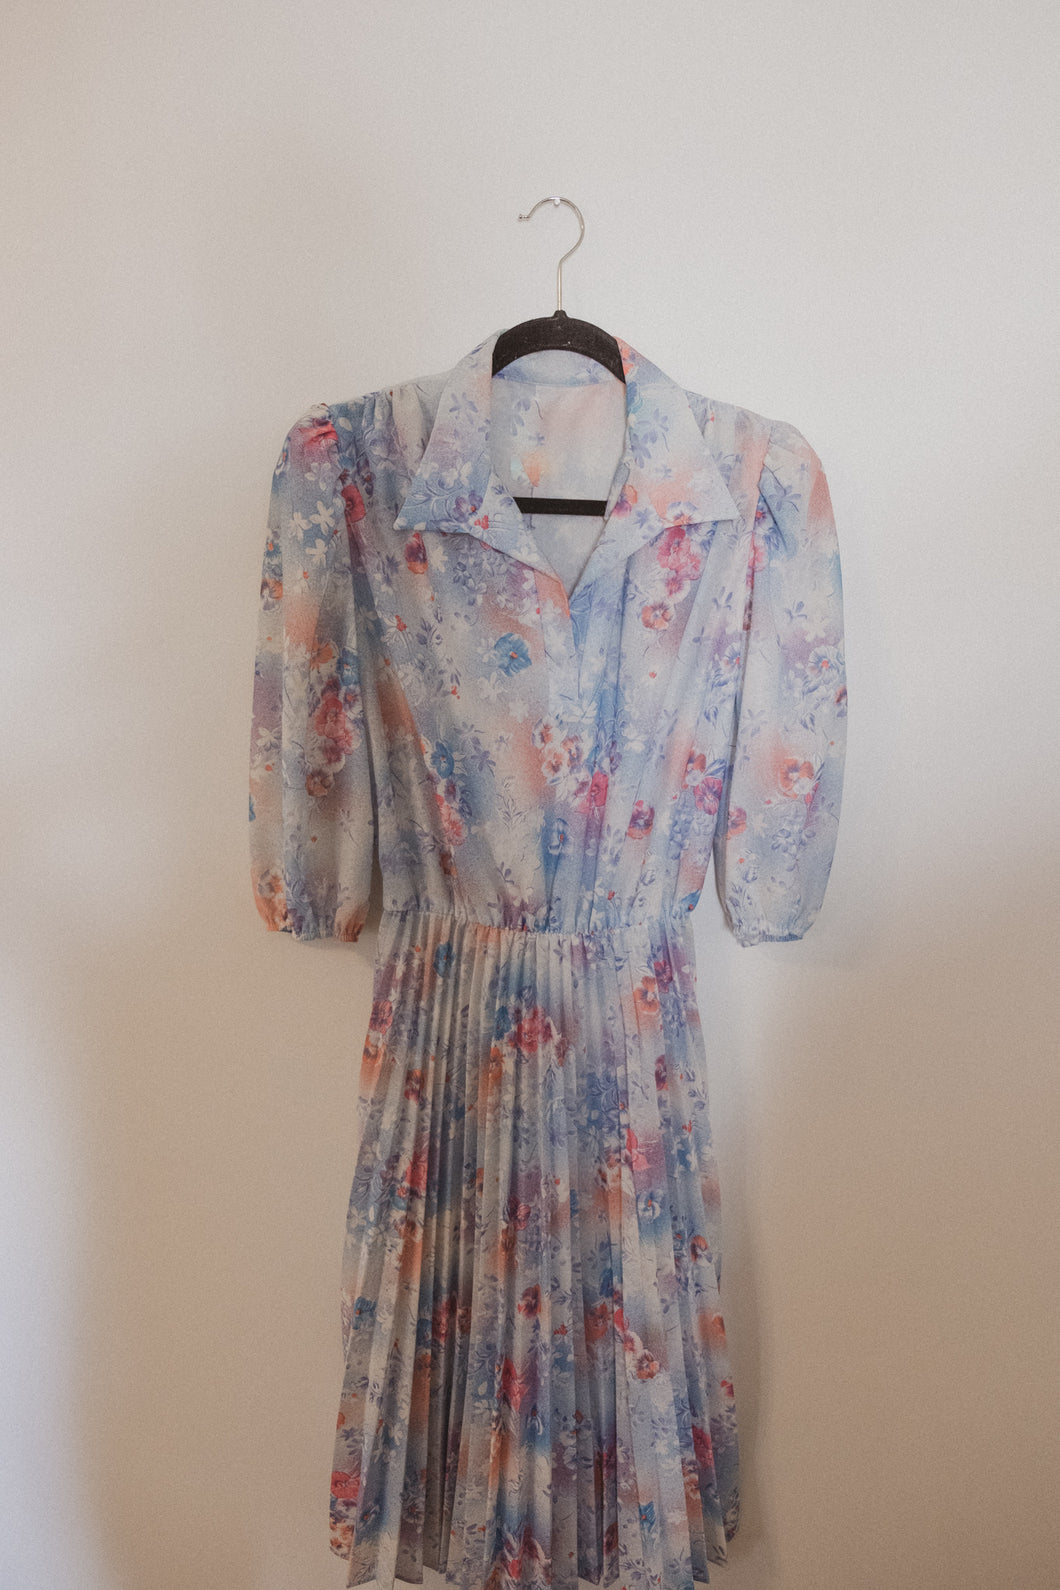 VINTAGE WATERCOLOR PLEATED DRESS (S)